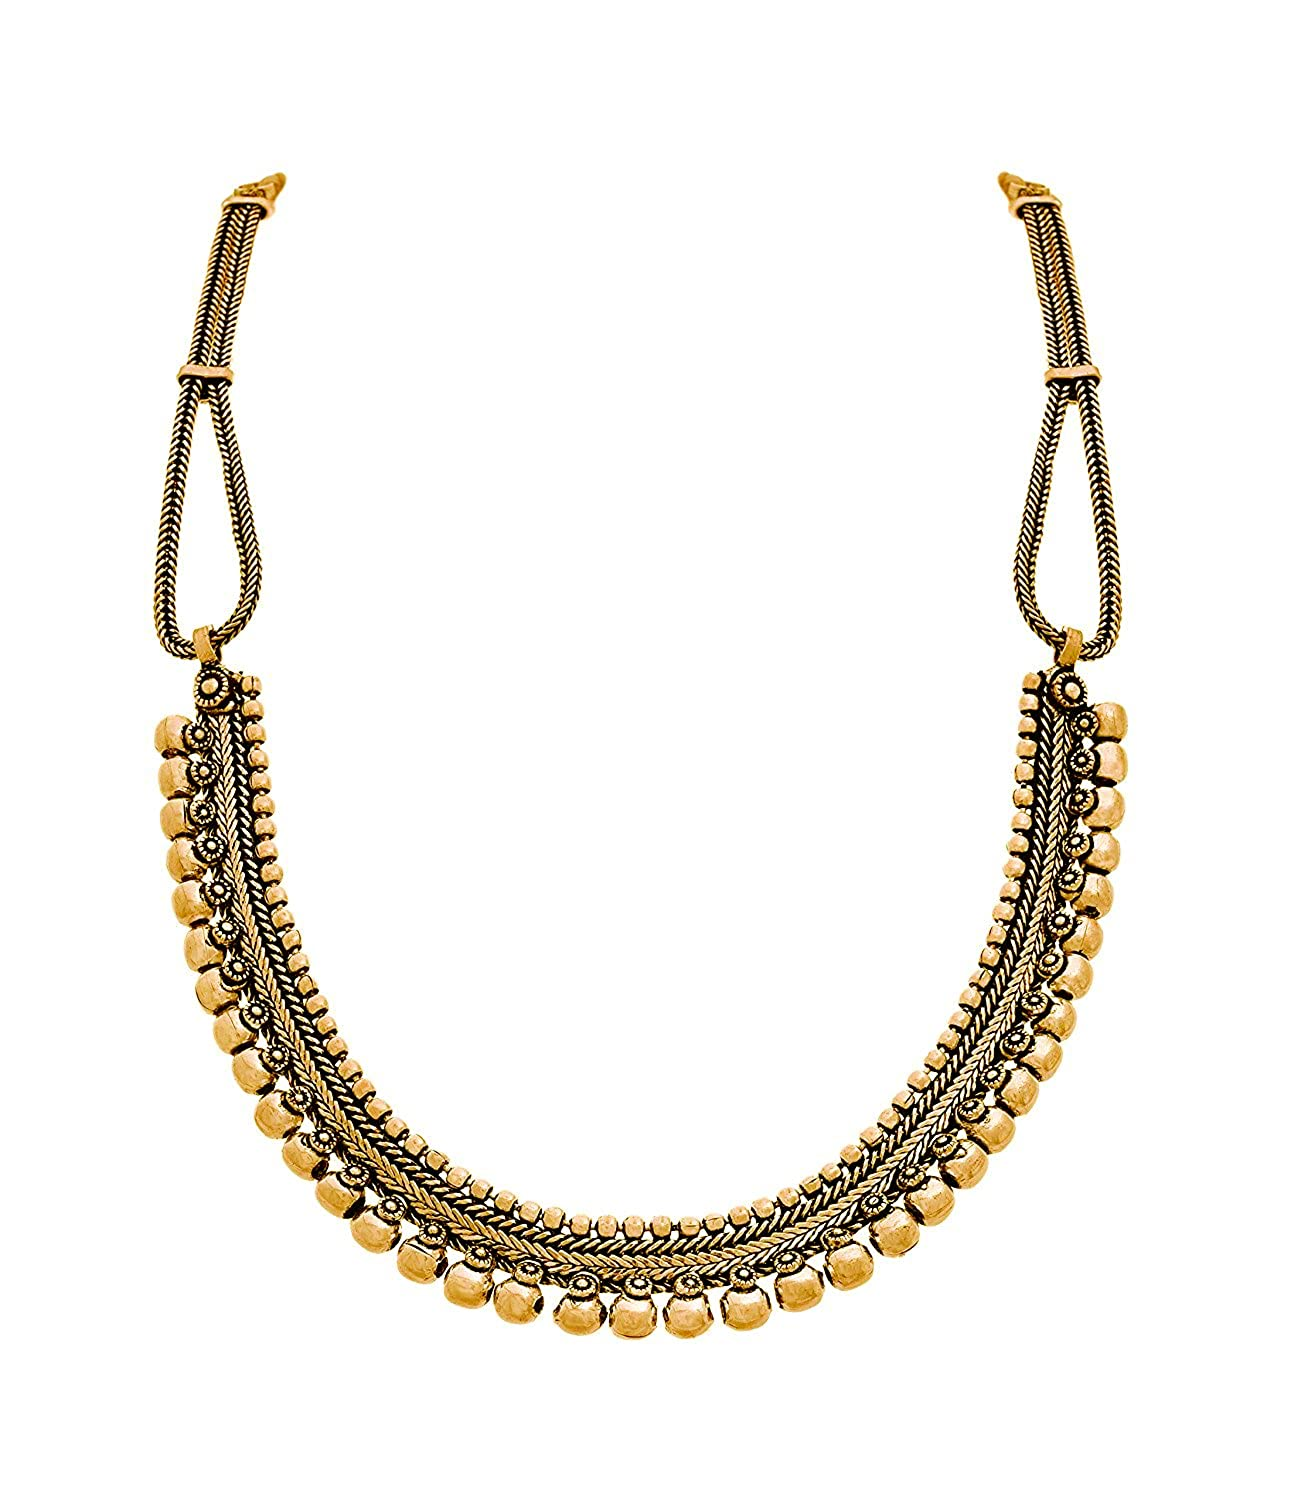 The Trendy Trendz India Bollywood Oxidized Golden Gypsy Style Necklace Jewelry for Women and Girls